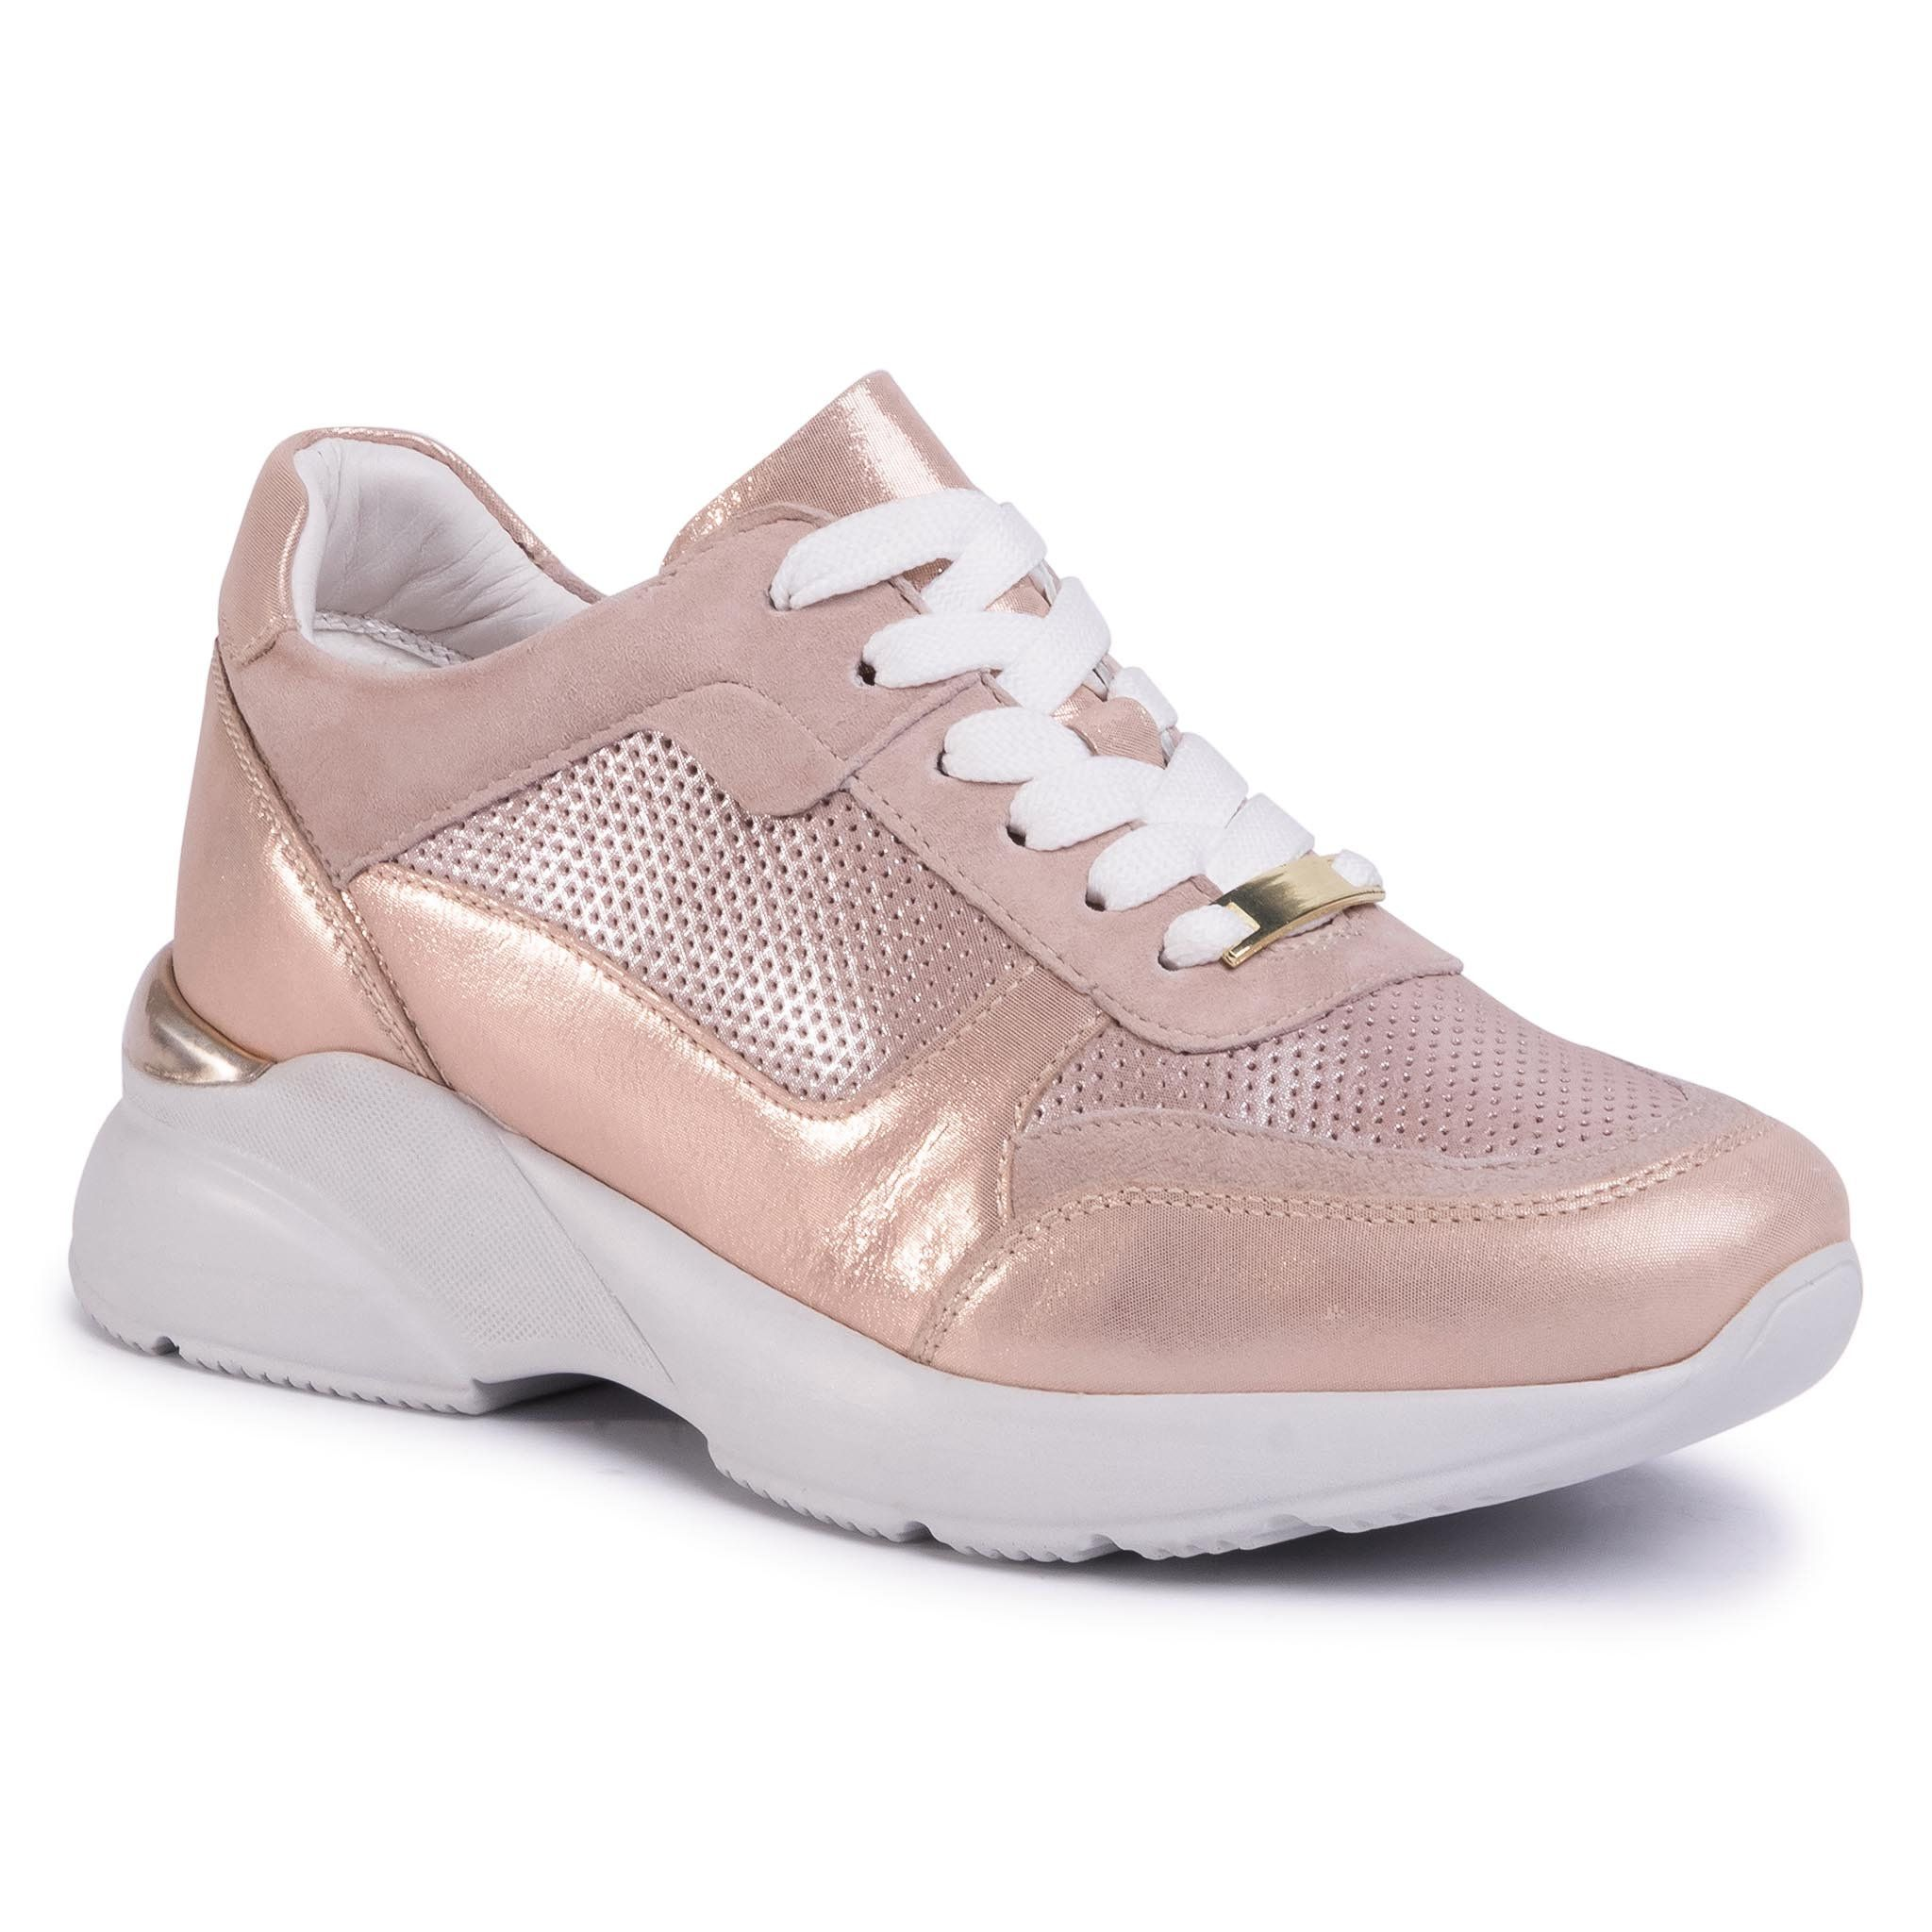 Cipele Gino Rossi Sport Wi16 Patty 01 Pink Sneakers Rossi Pink